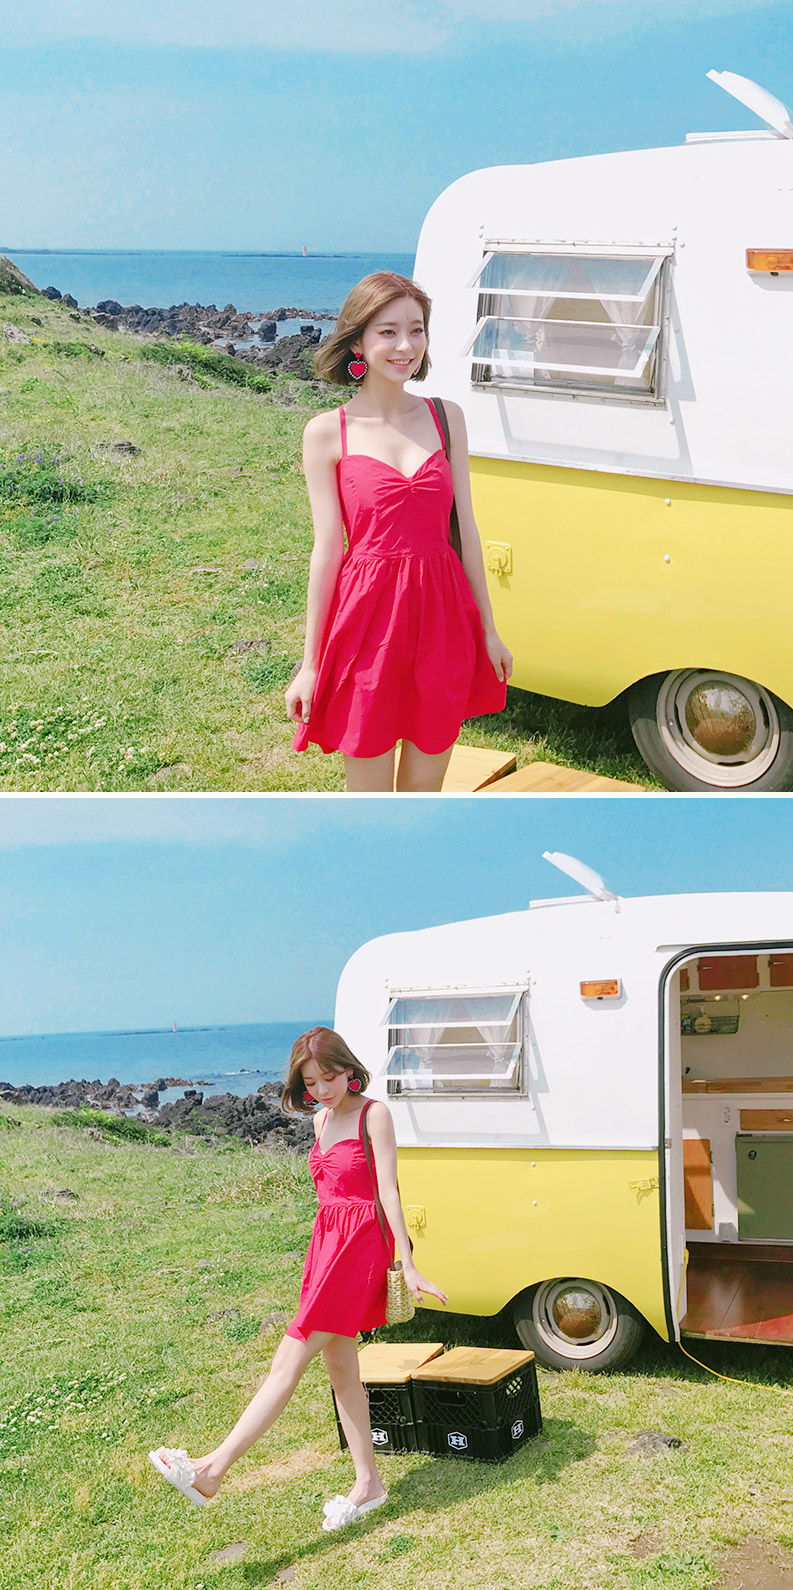 //cdn.nhanh.vn/cdn/store/29770/psCT/20180909/8968172/CHUU_Bright_Red_Lips_Mini_Dress_(2).jpg